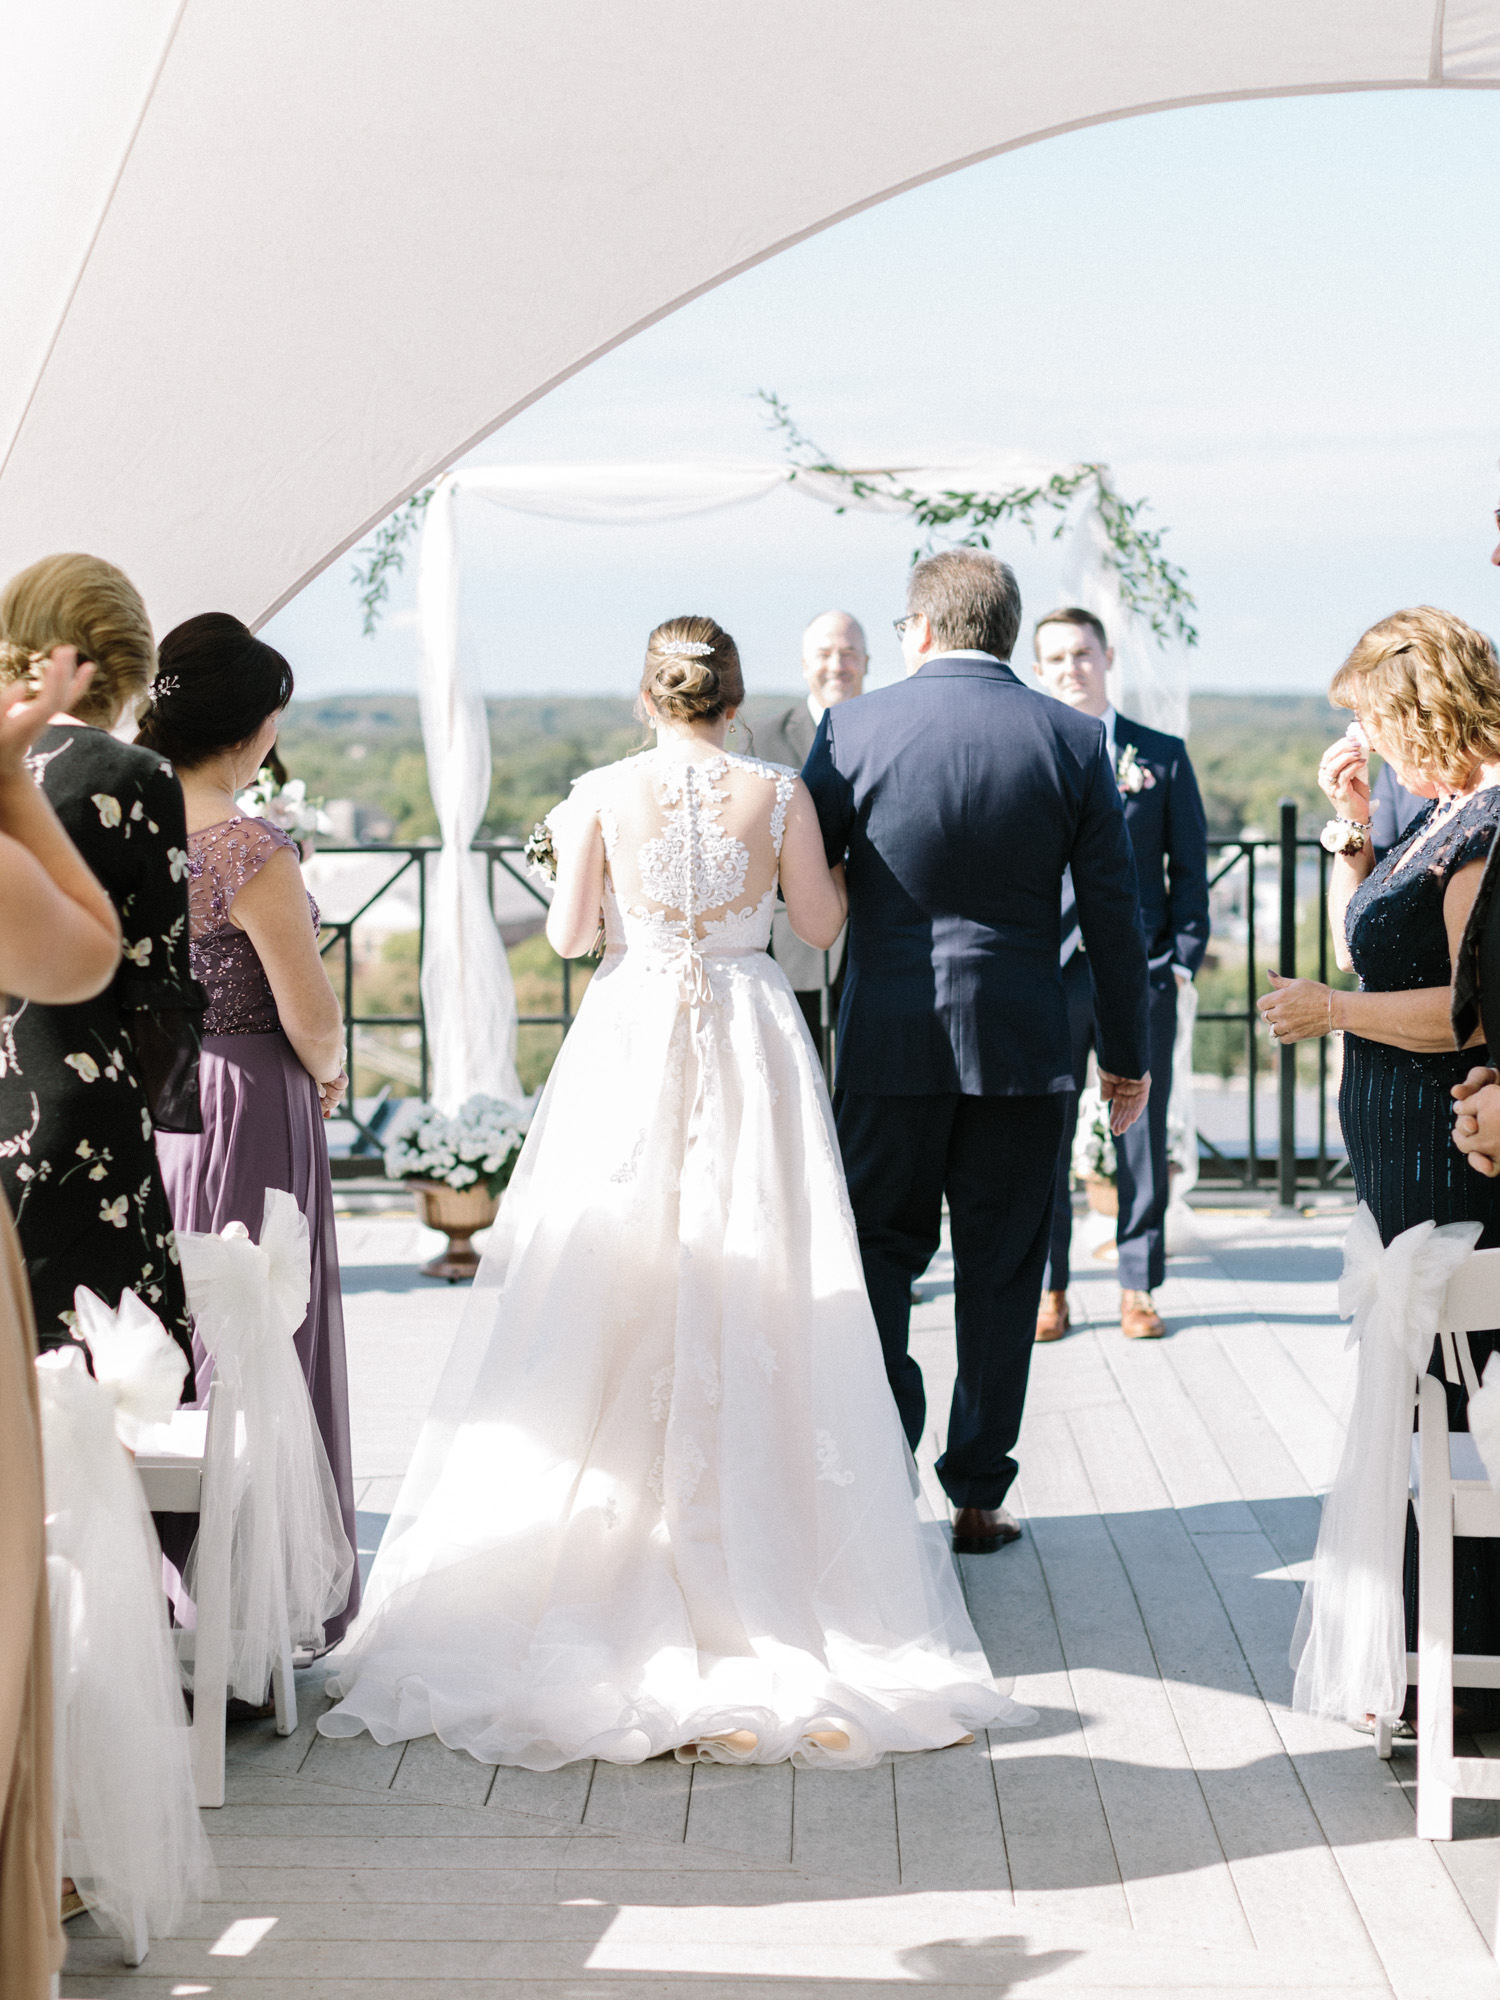 The view from behind as a bride in an ornate lace gown walks down the aisle on the rooftop of Loft 310